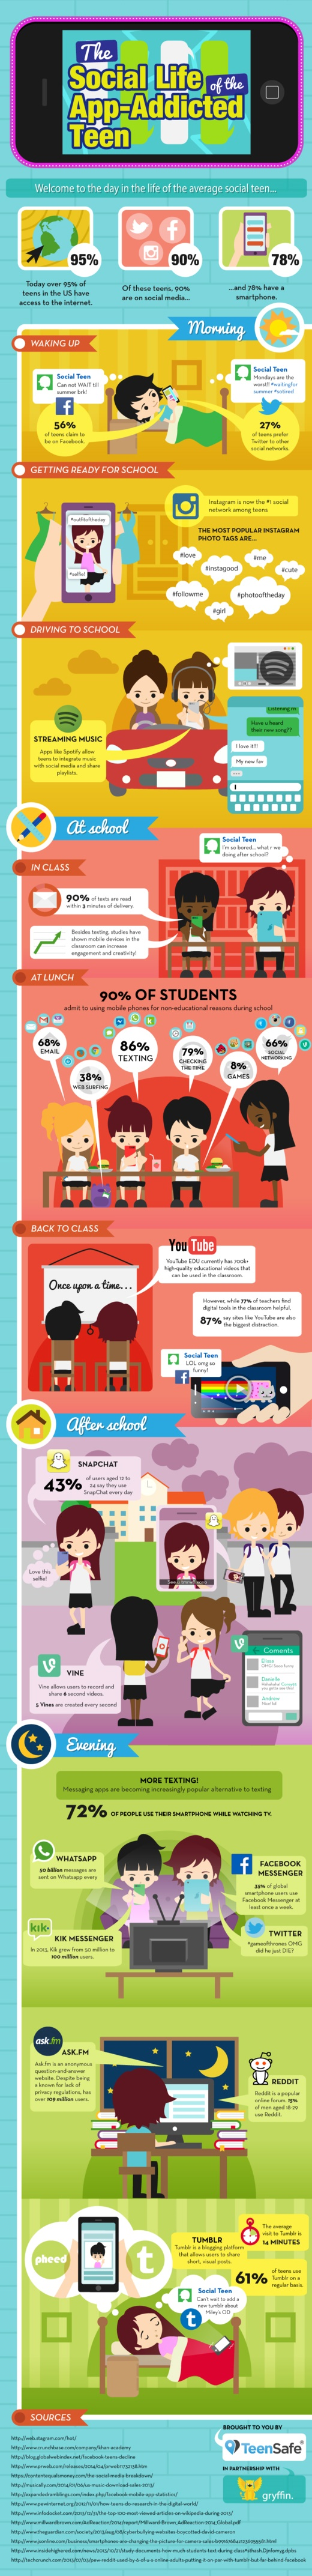 The-Social-Life-of-the-App-Addicted-Teen